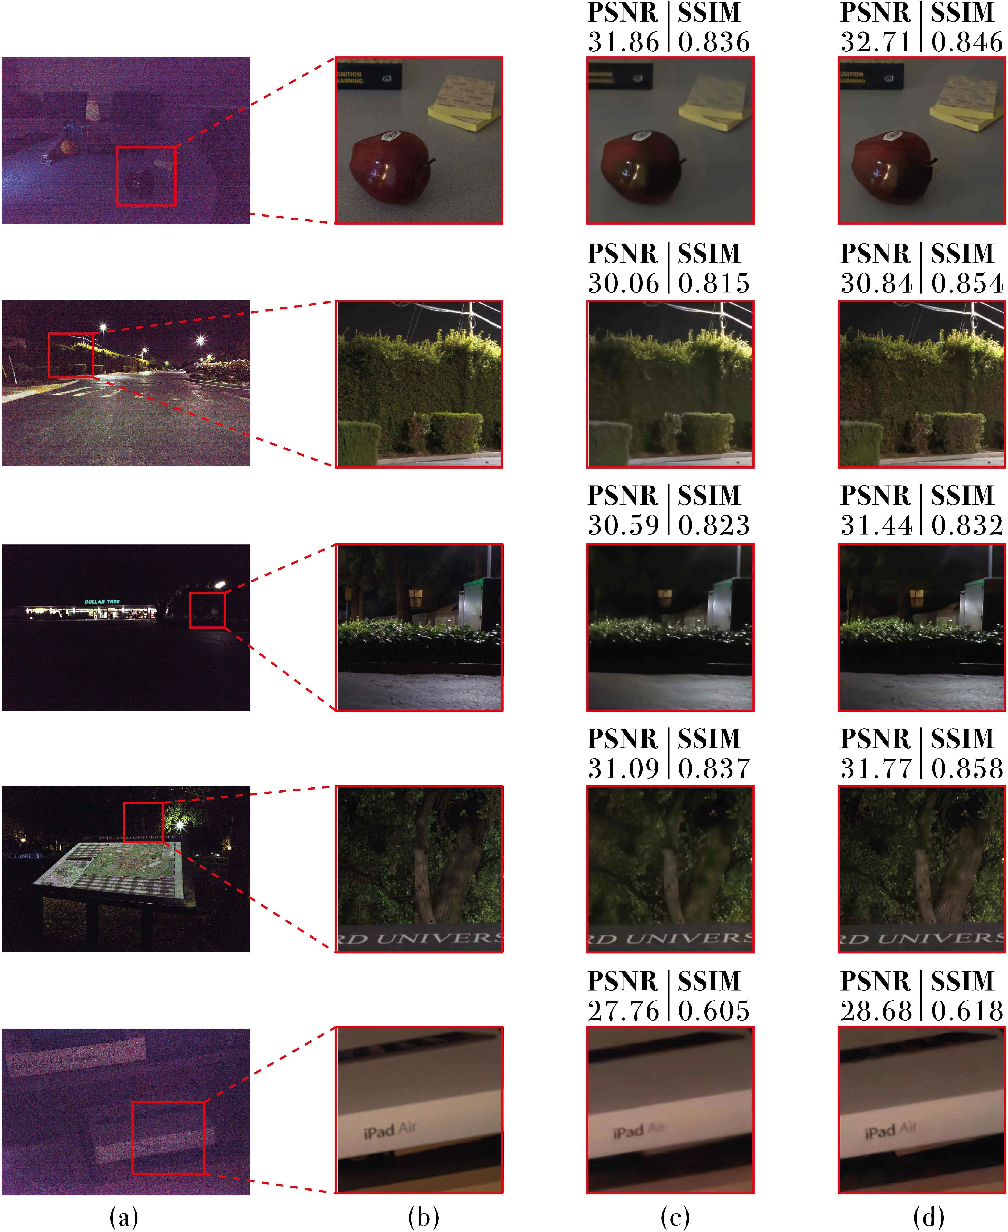 Figure 4 for End-to-End Denoising of Dark Burst Images Using Recurrent Fully Convolutional Networks